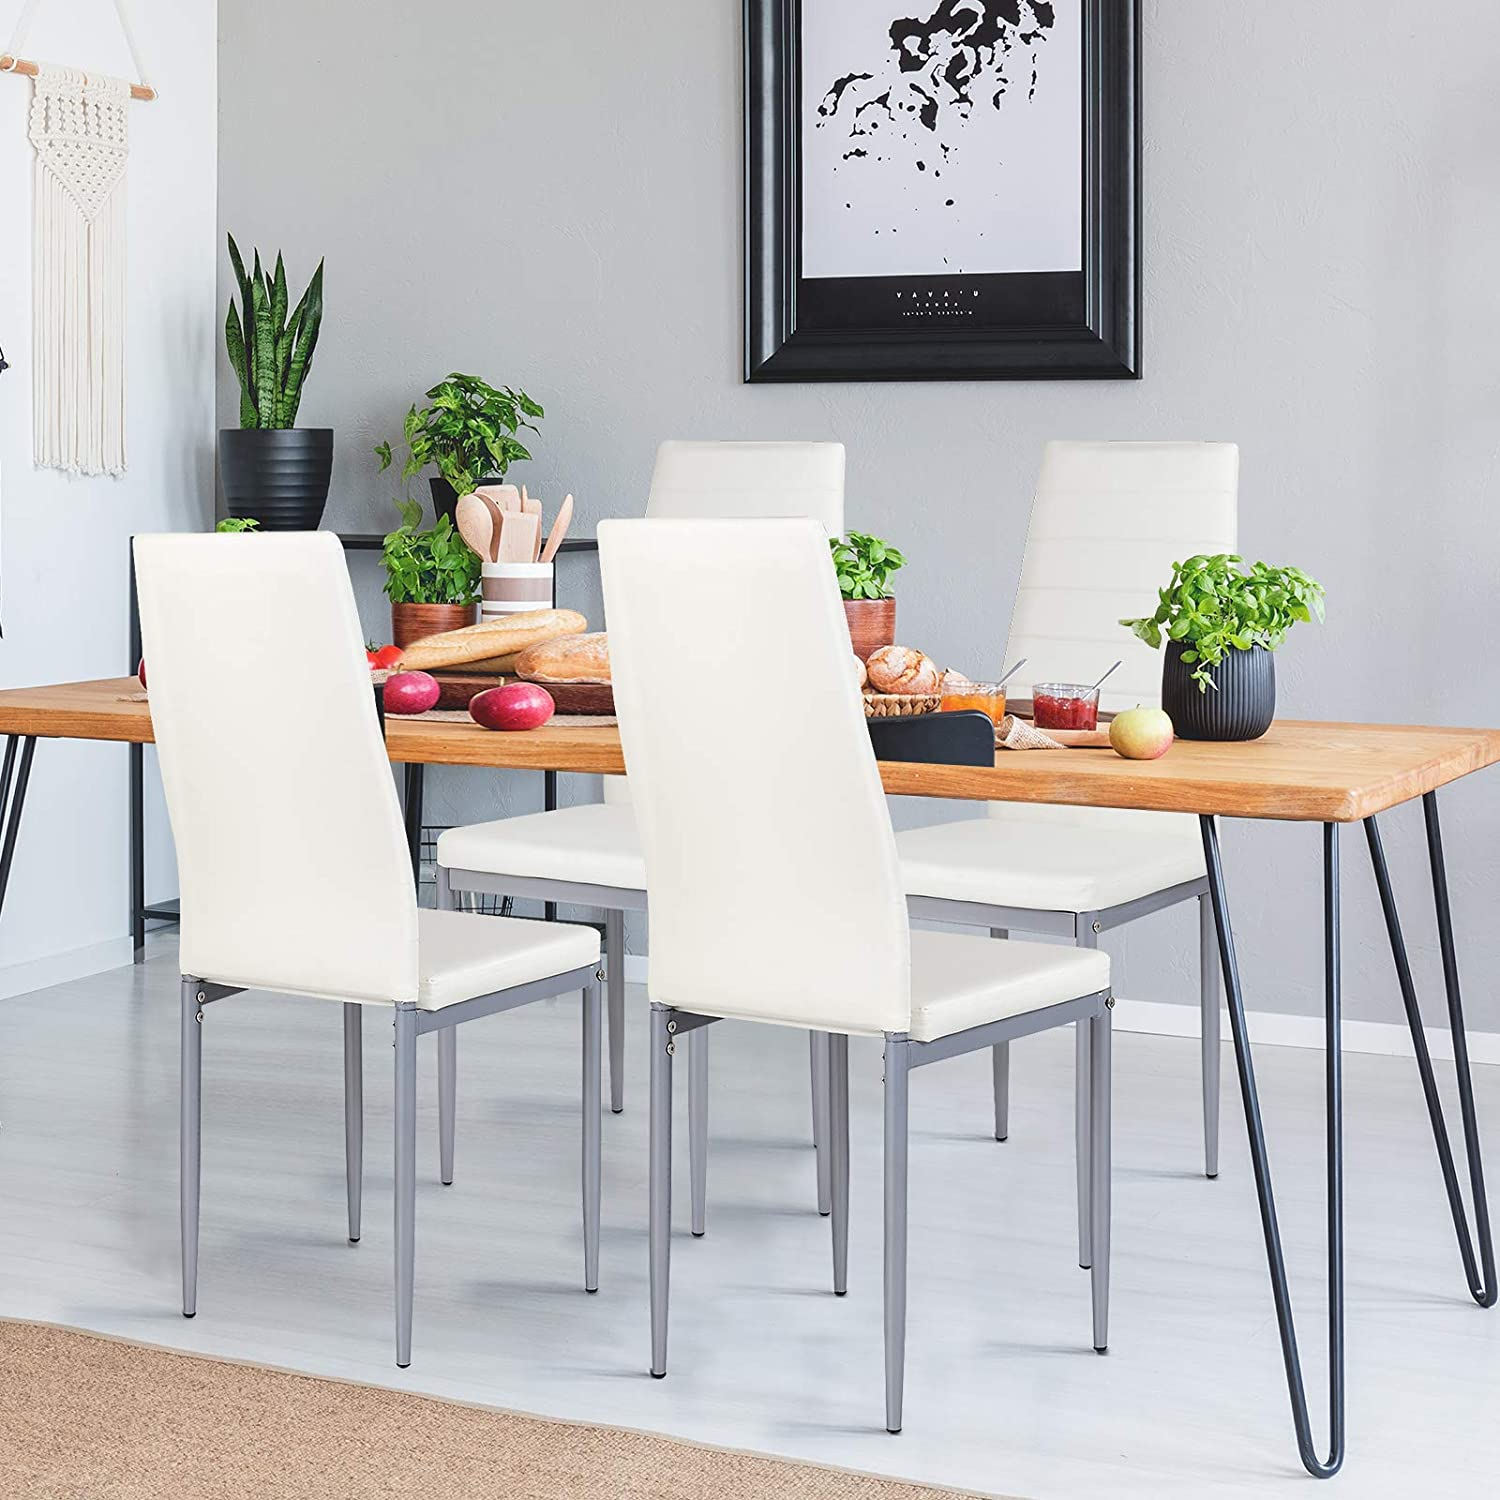 Best Overall: Giantex Leather Dining Chairs.